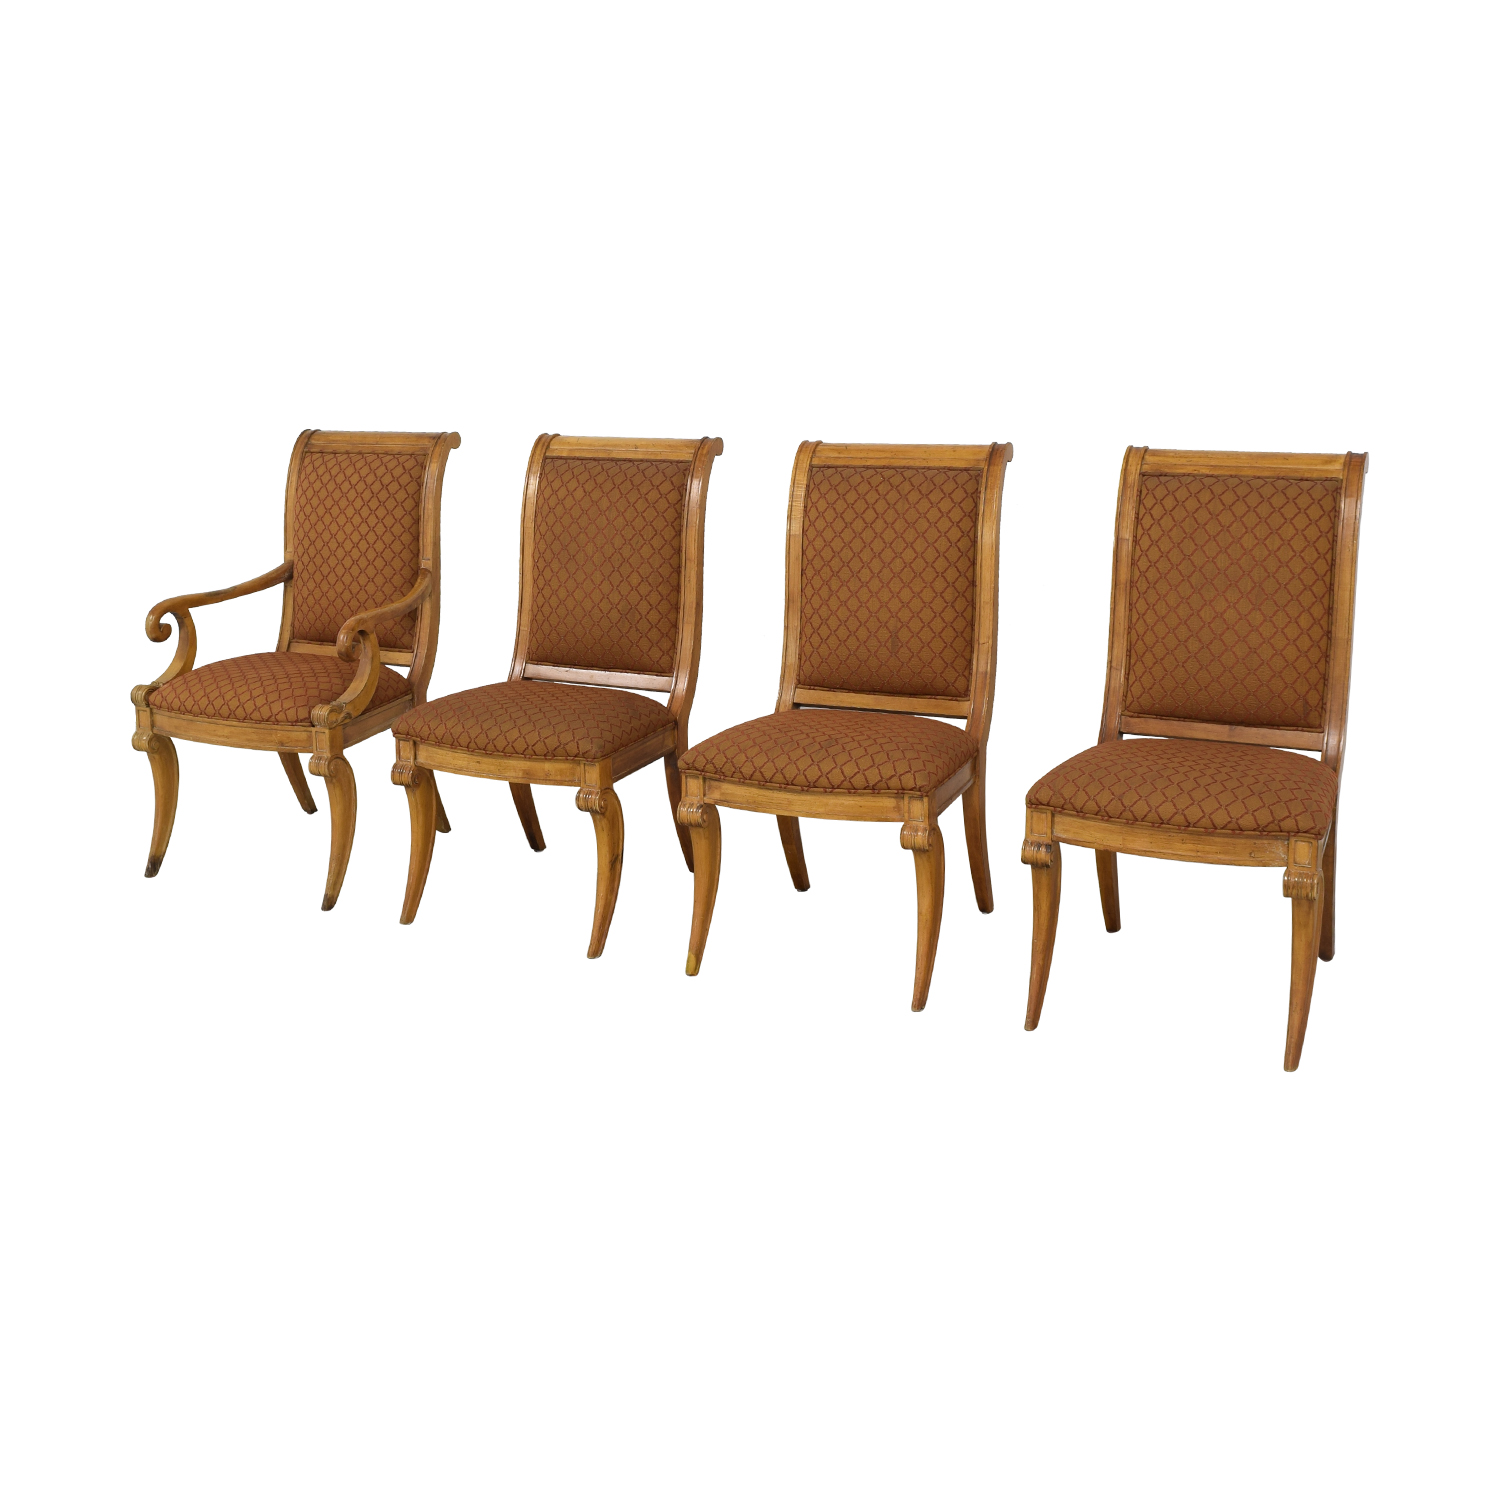 Century Furniture Century Furniture Upholstered Dining Chairs Dining Chairs